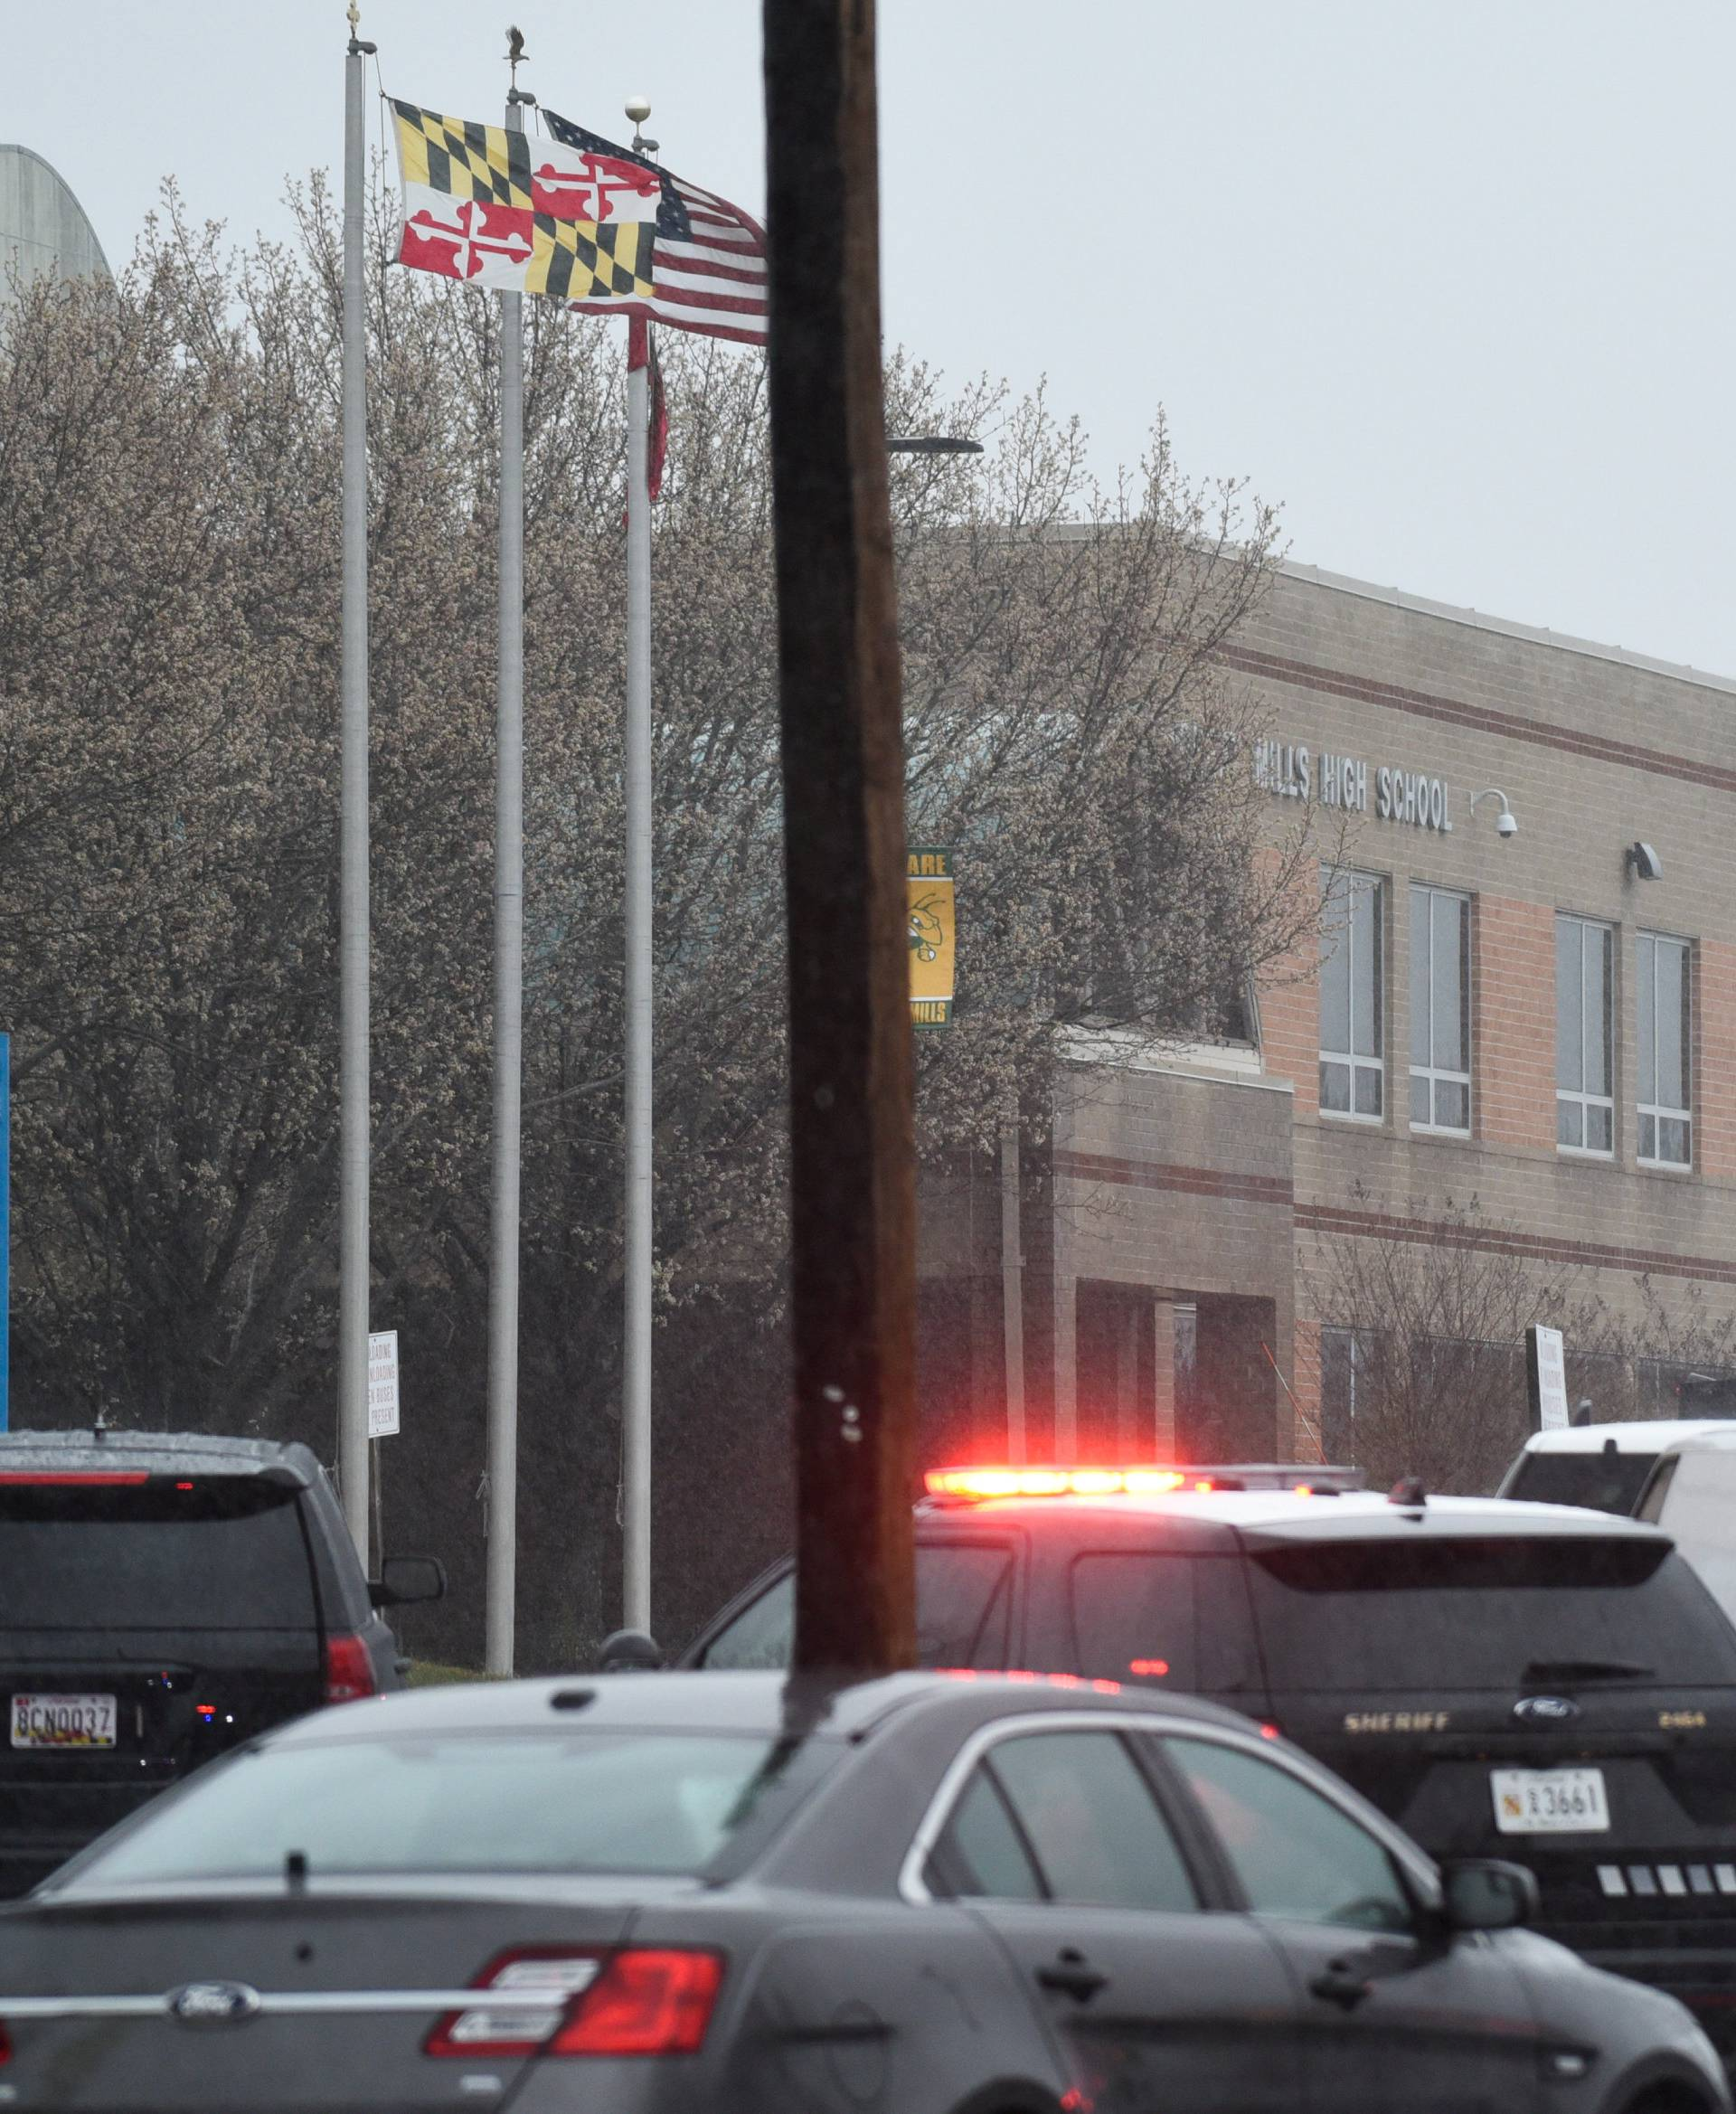 Emergency services and law enforcement vehicles are seen outside the Great Mills High School following a shooting on Tuesday morning in St. Mary's County, Maryland